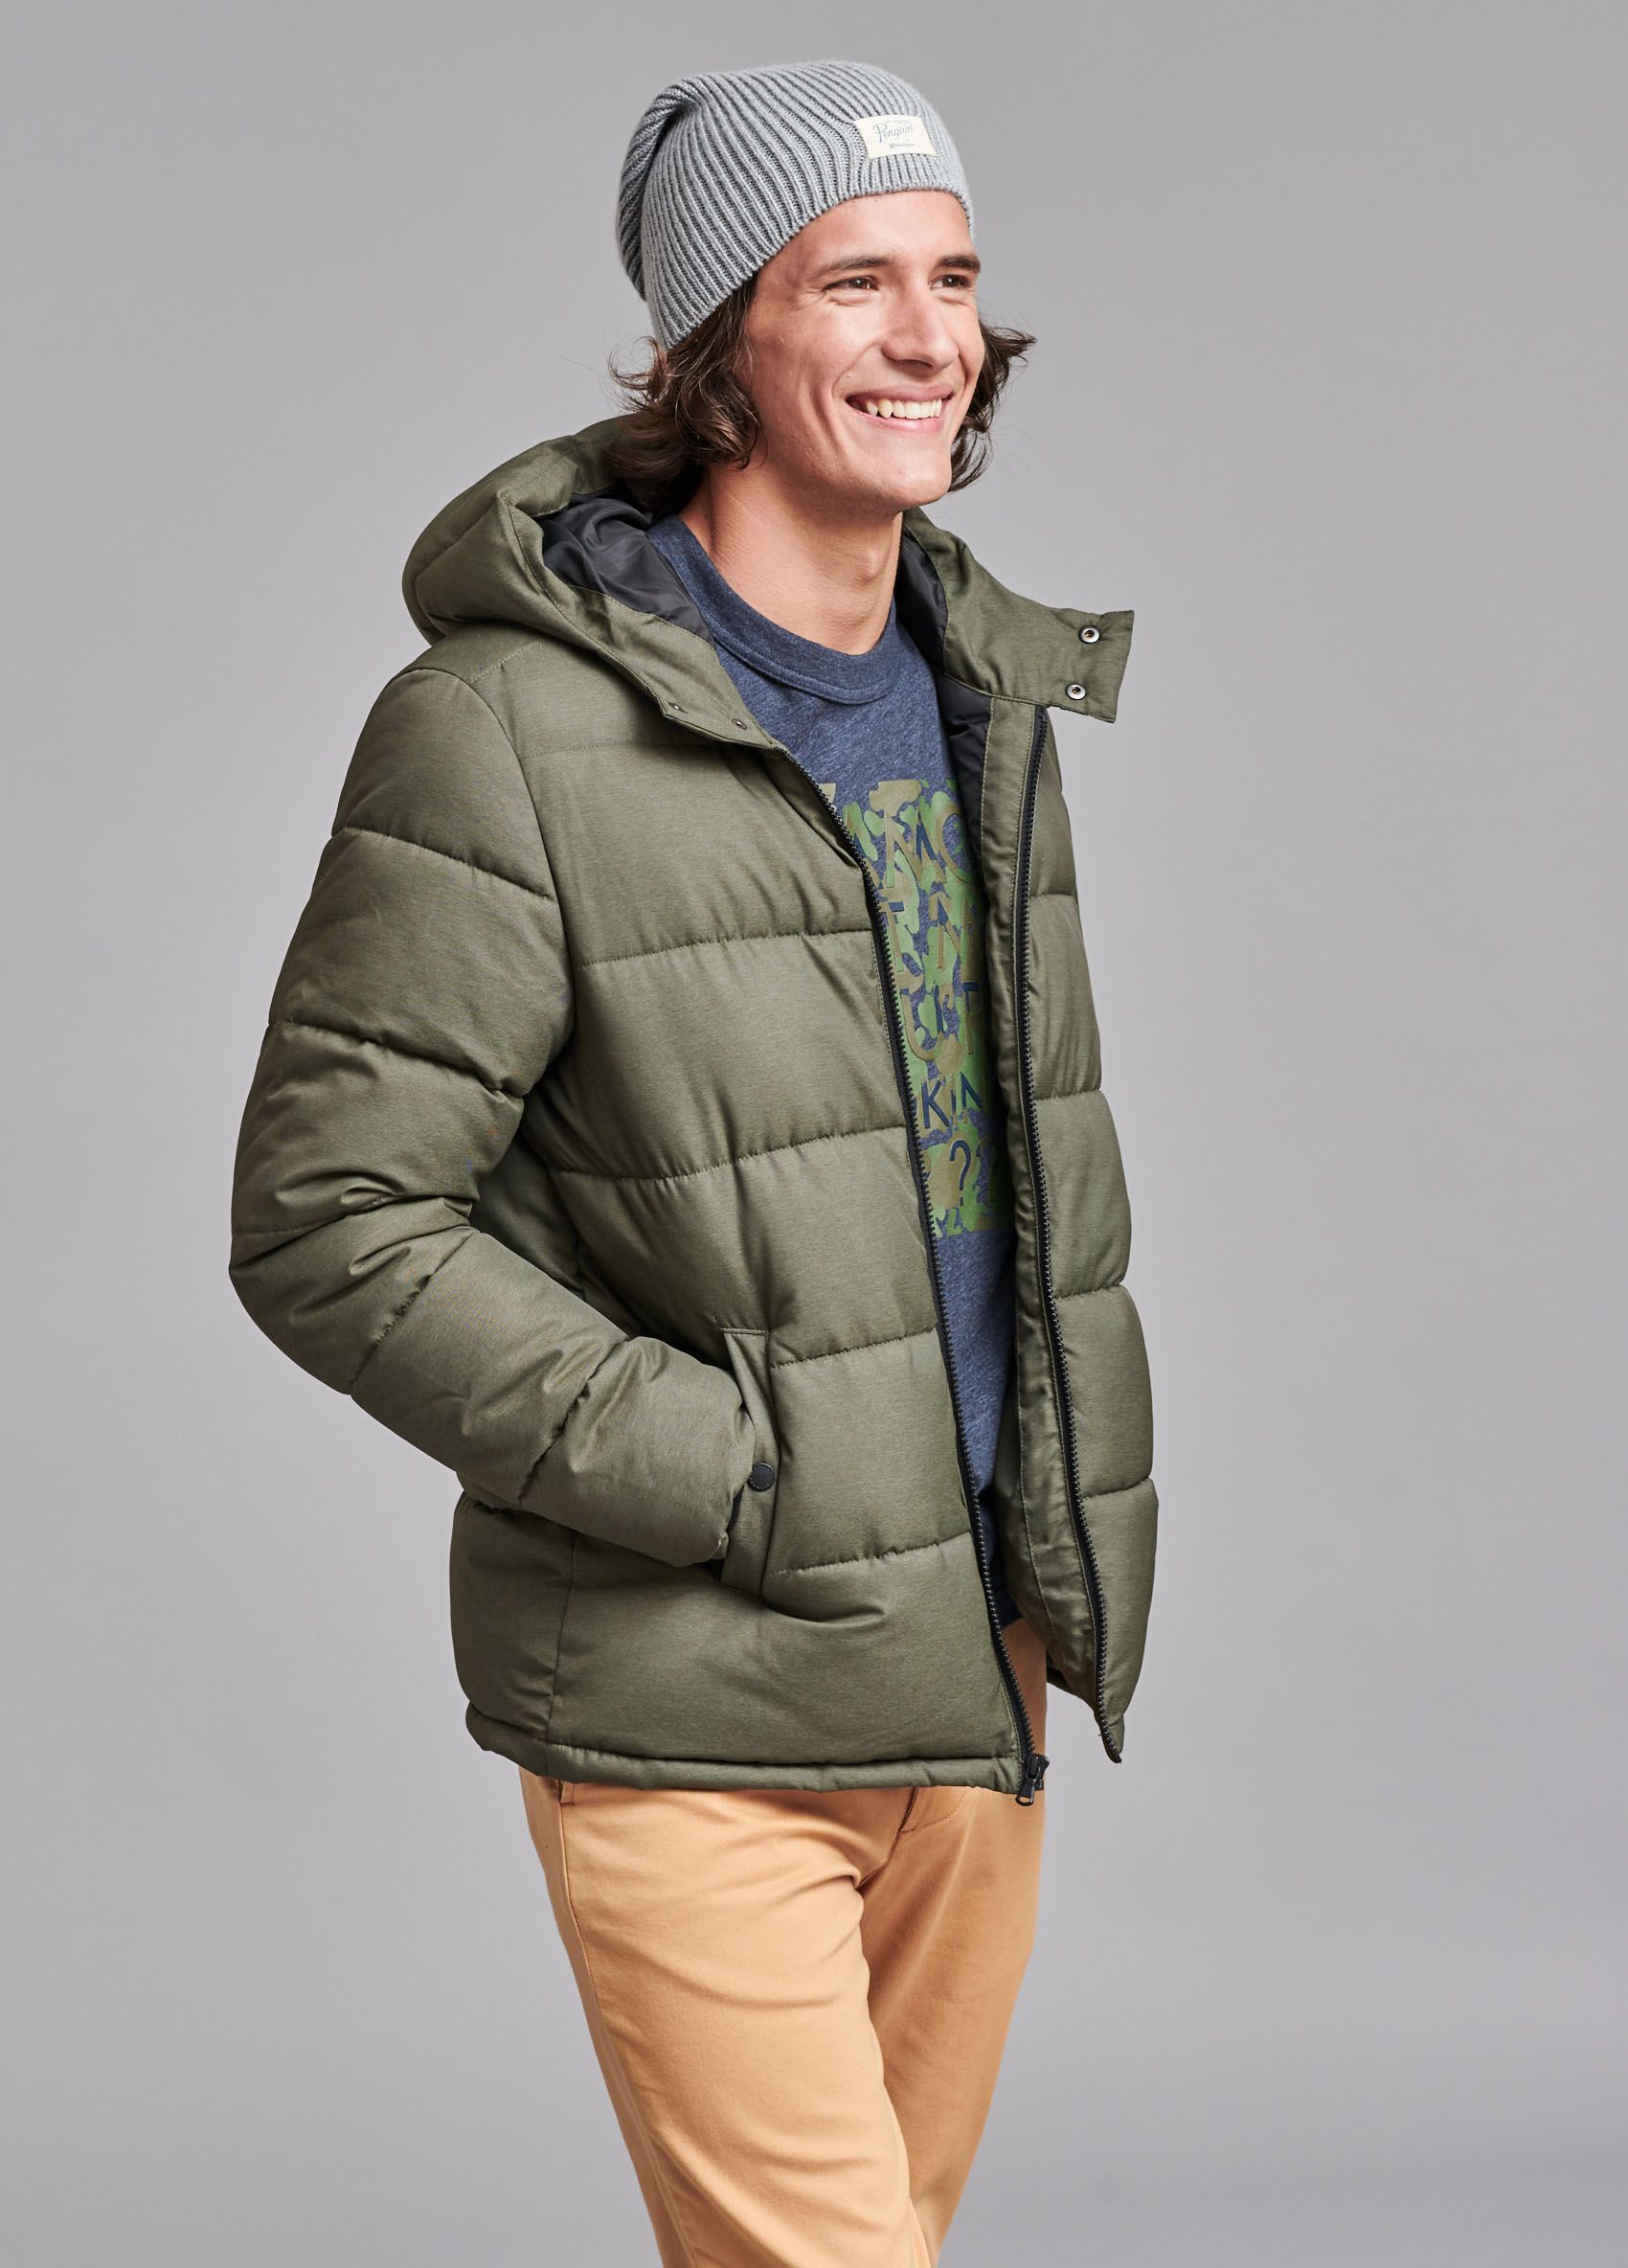 penguin_insulated-melange-puffer-jacket_58-15-2019__picture-8931